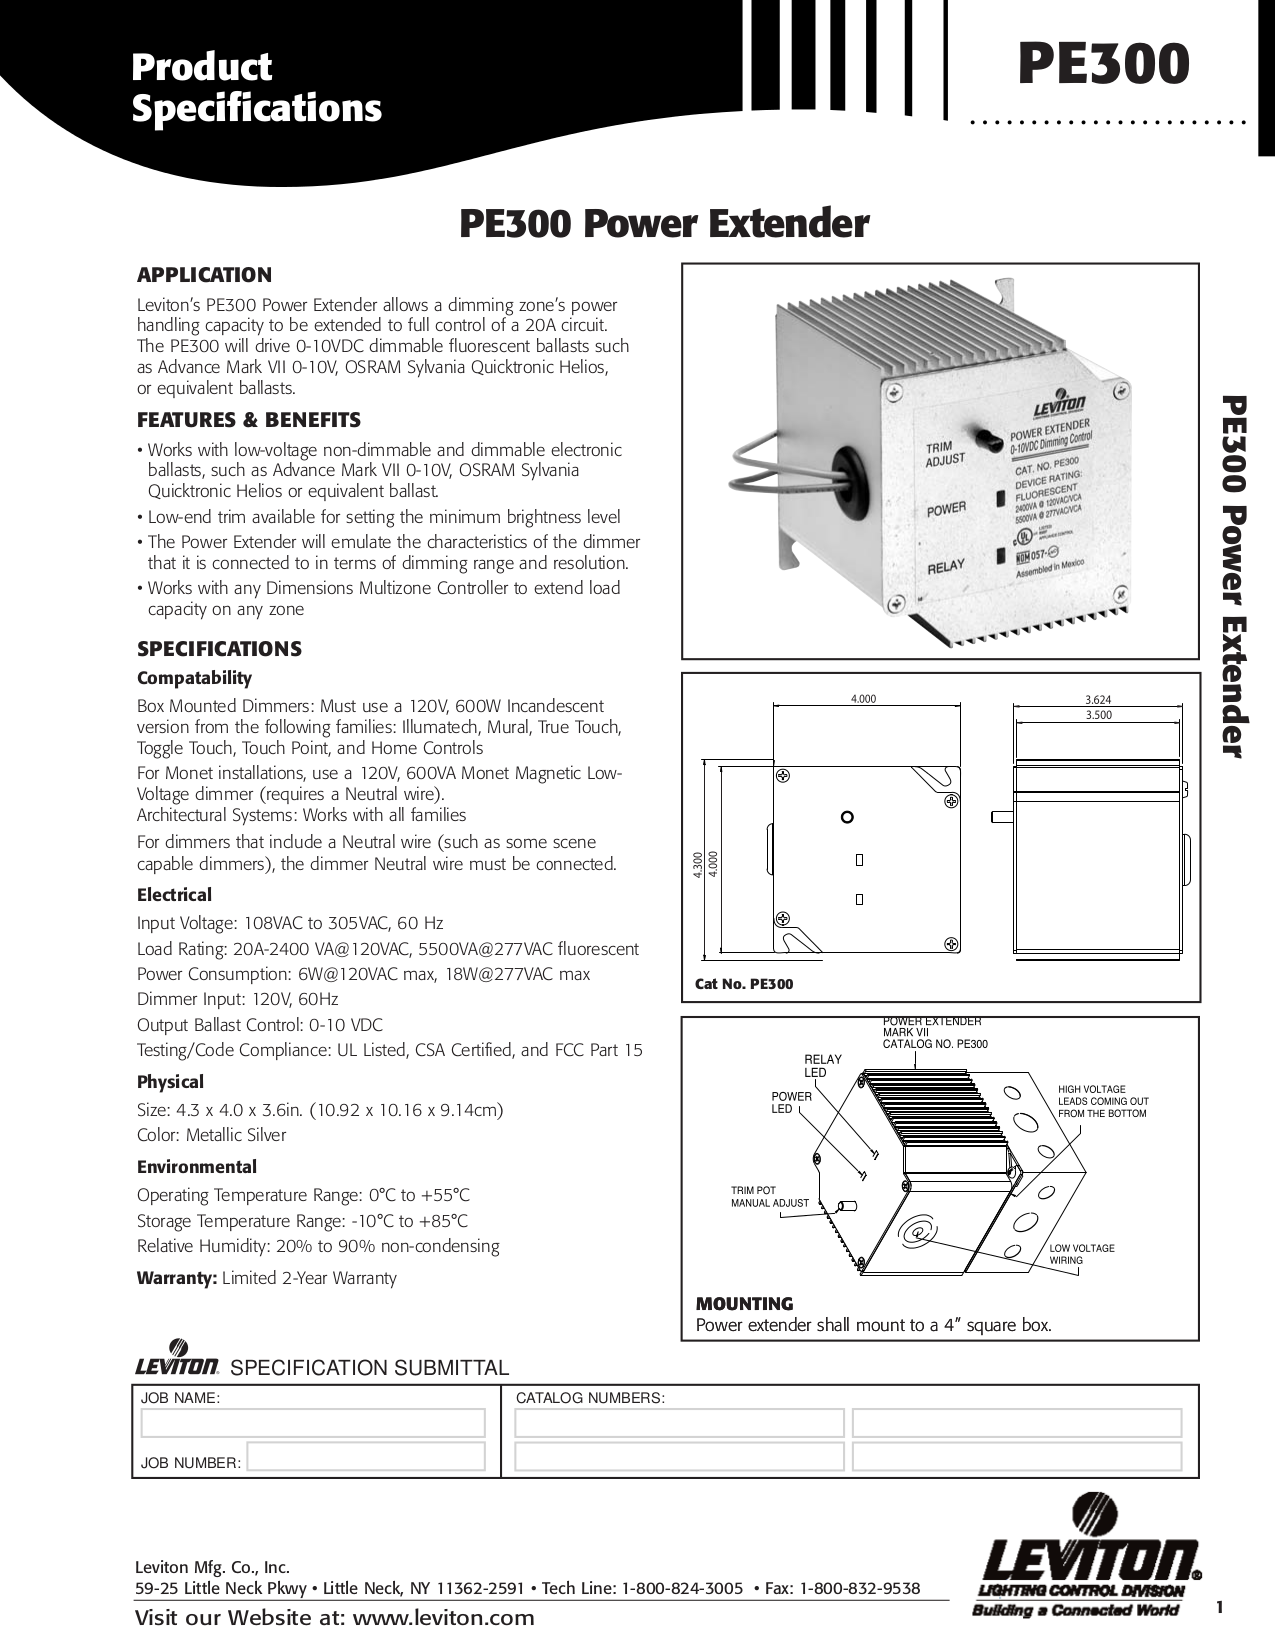 Download free pdf for Leviton PE300 Power Extender Other manual